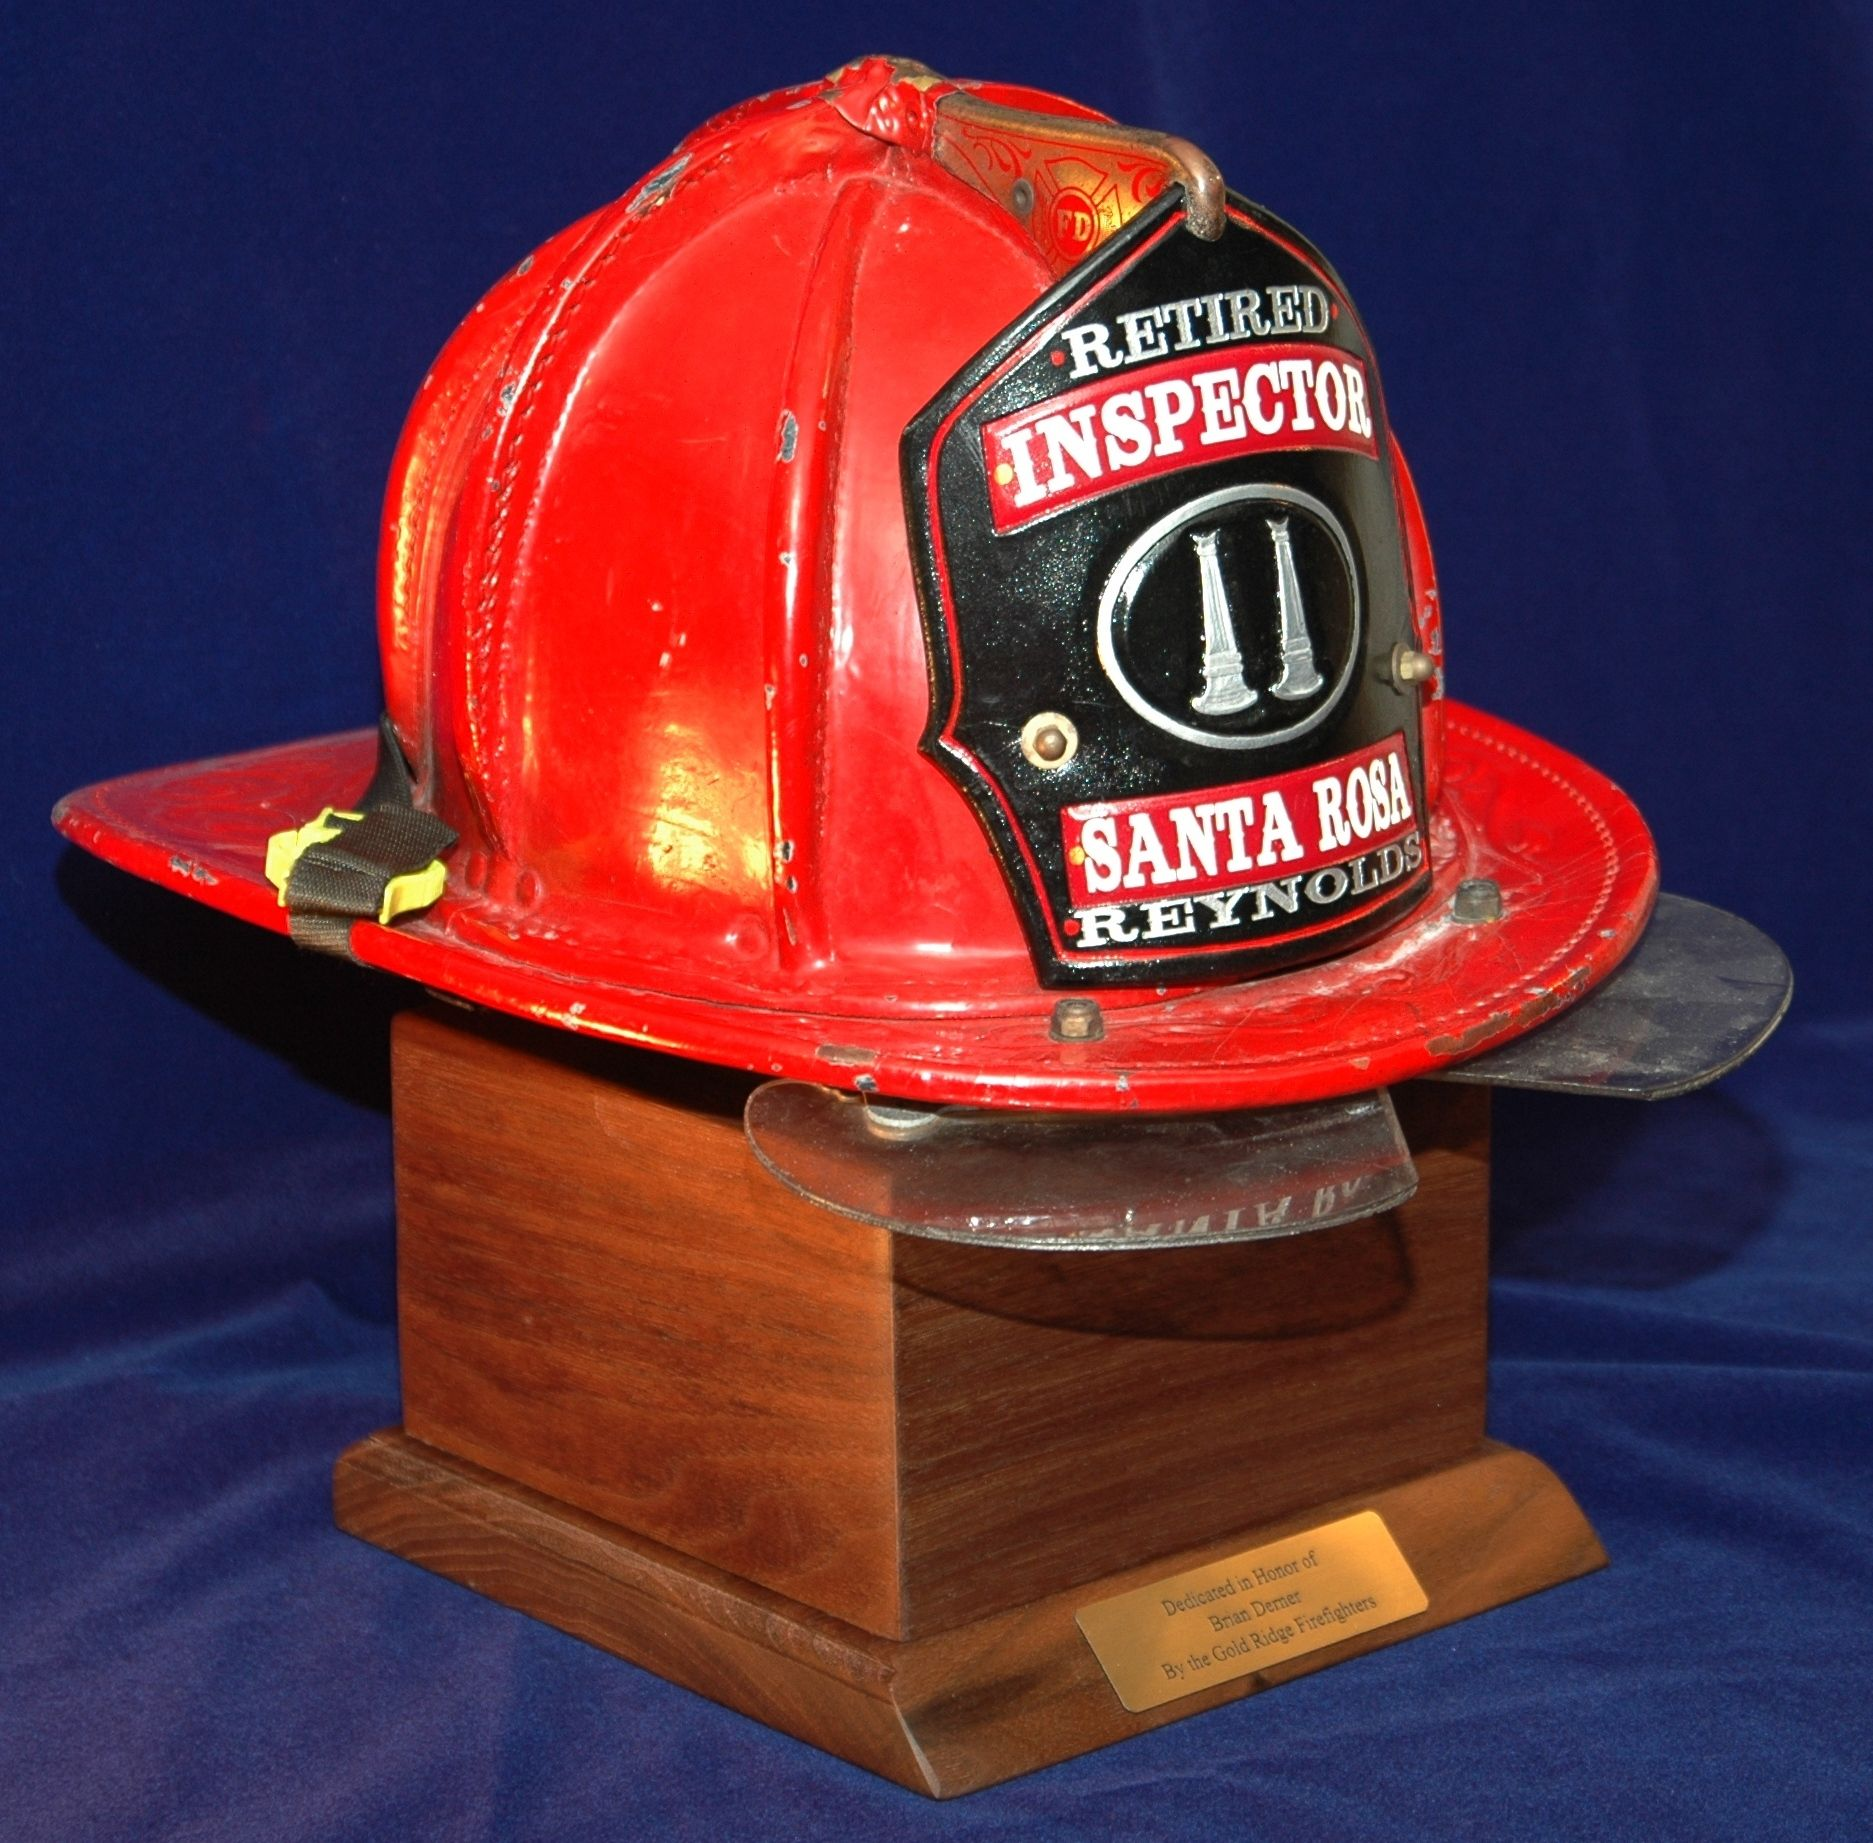 This Helmet Stand Is A Great Way To Display A Firefighter